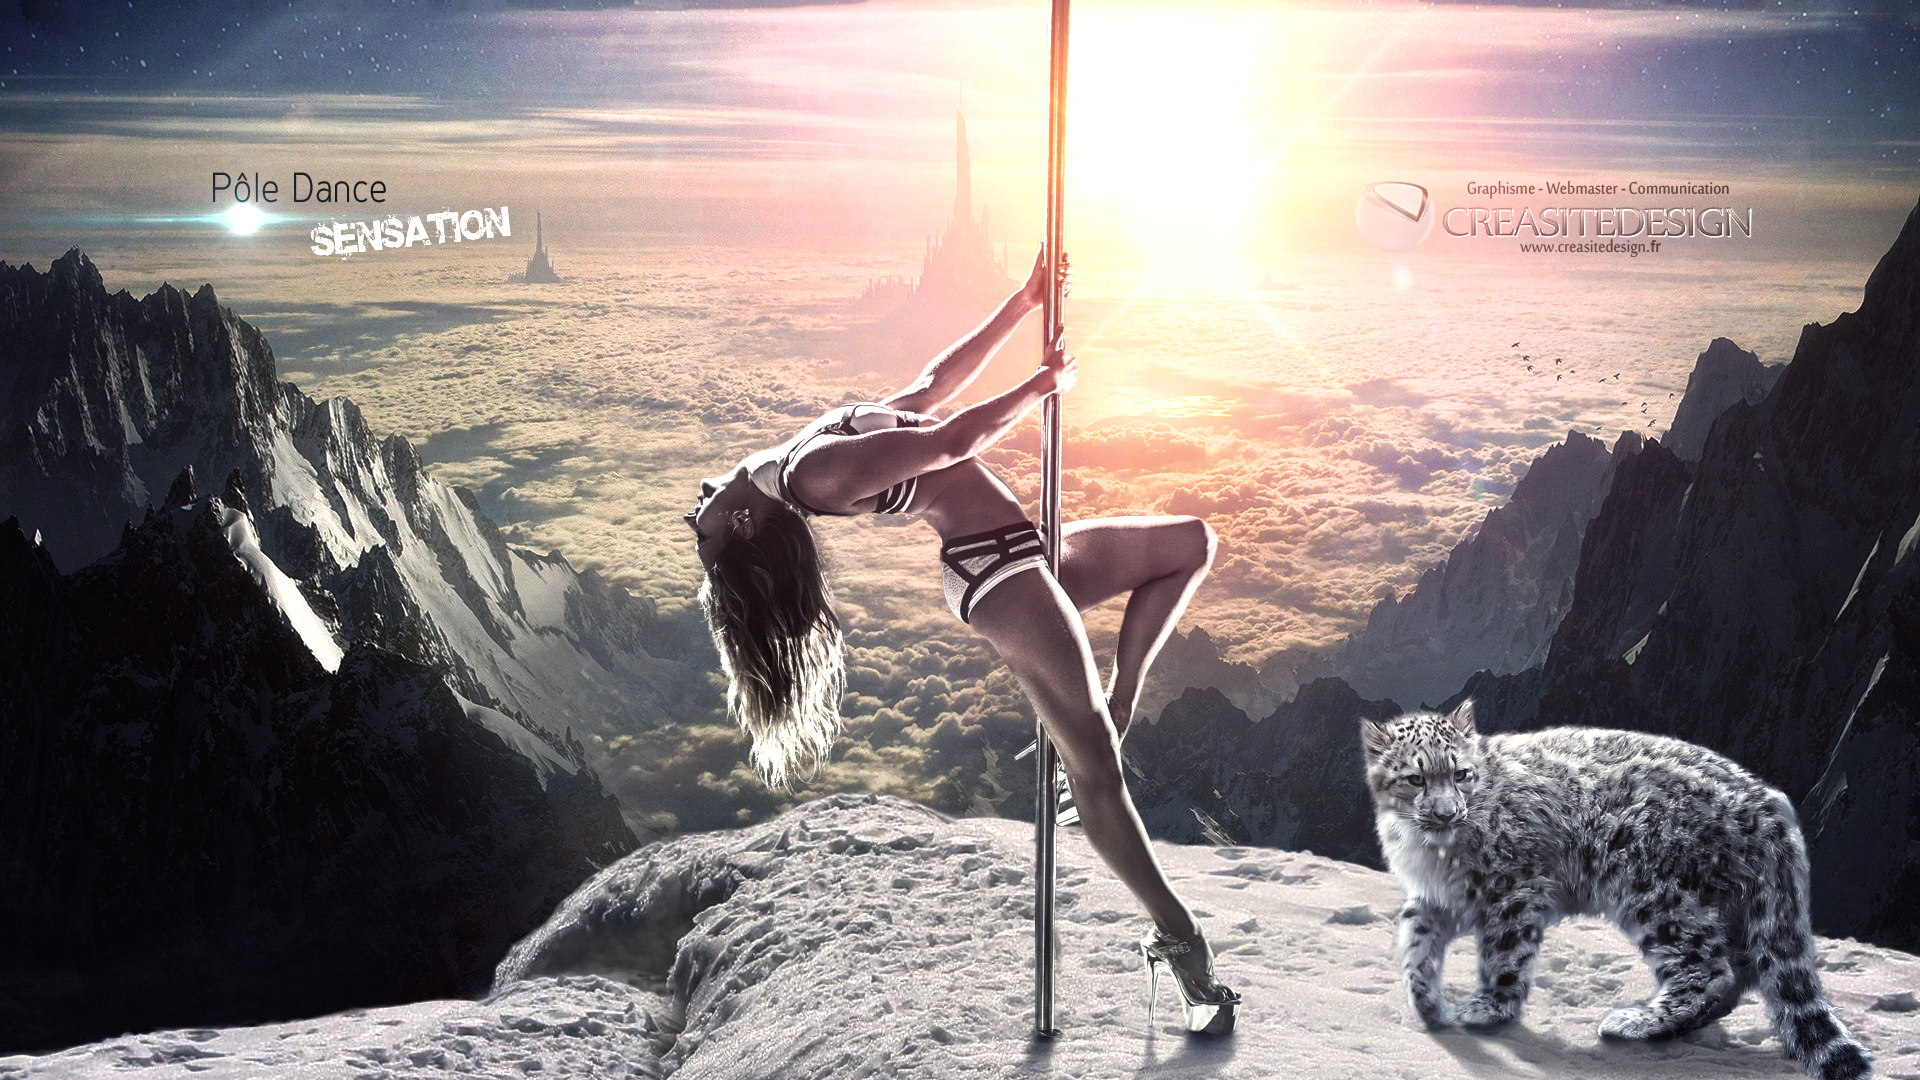 Fall Live Wallpaper For Phone Download Pole Dance Wallpaper Gallery